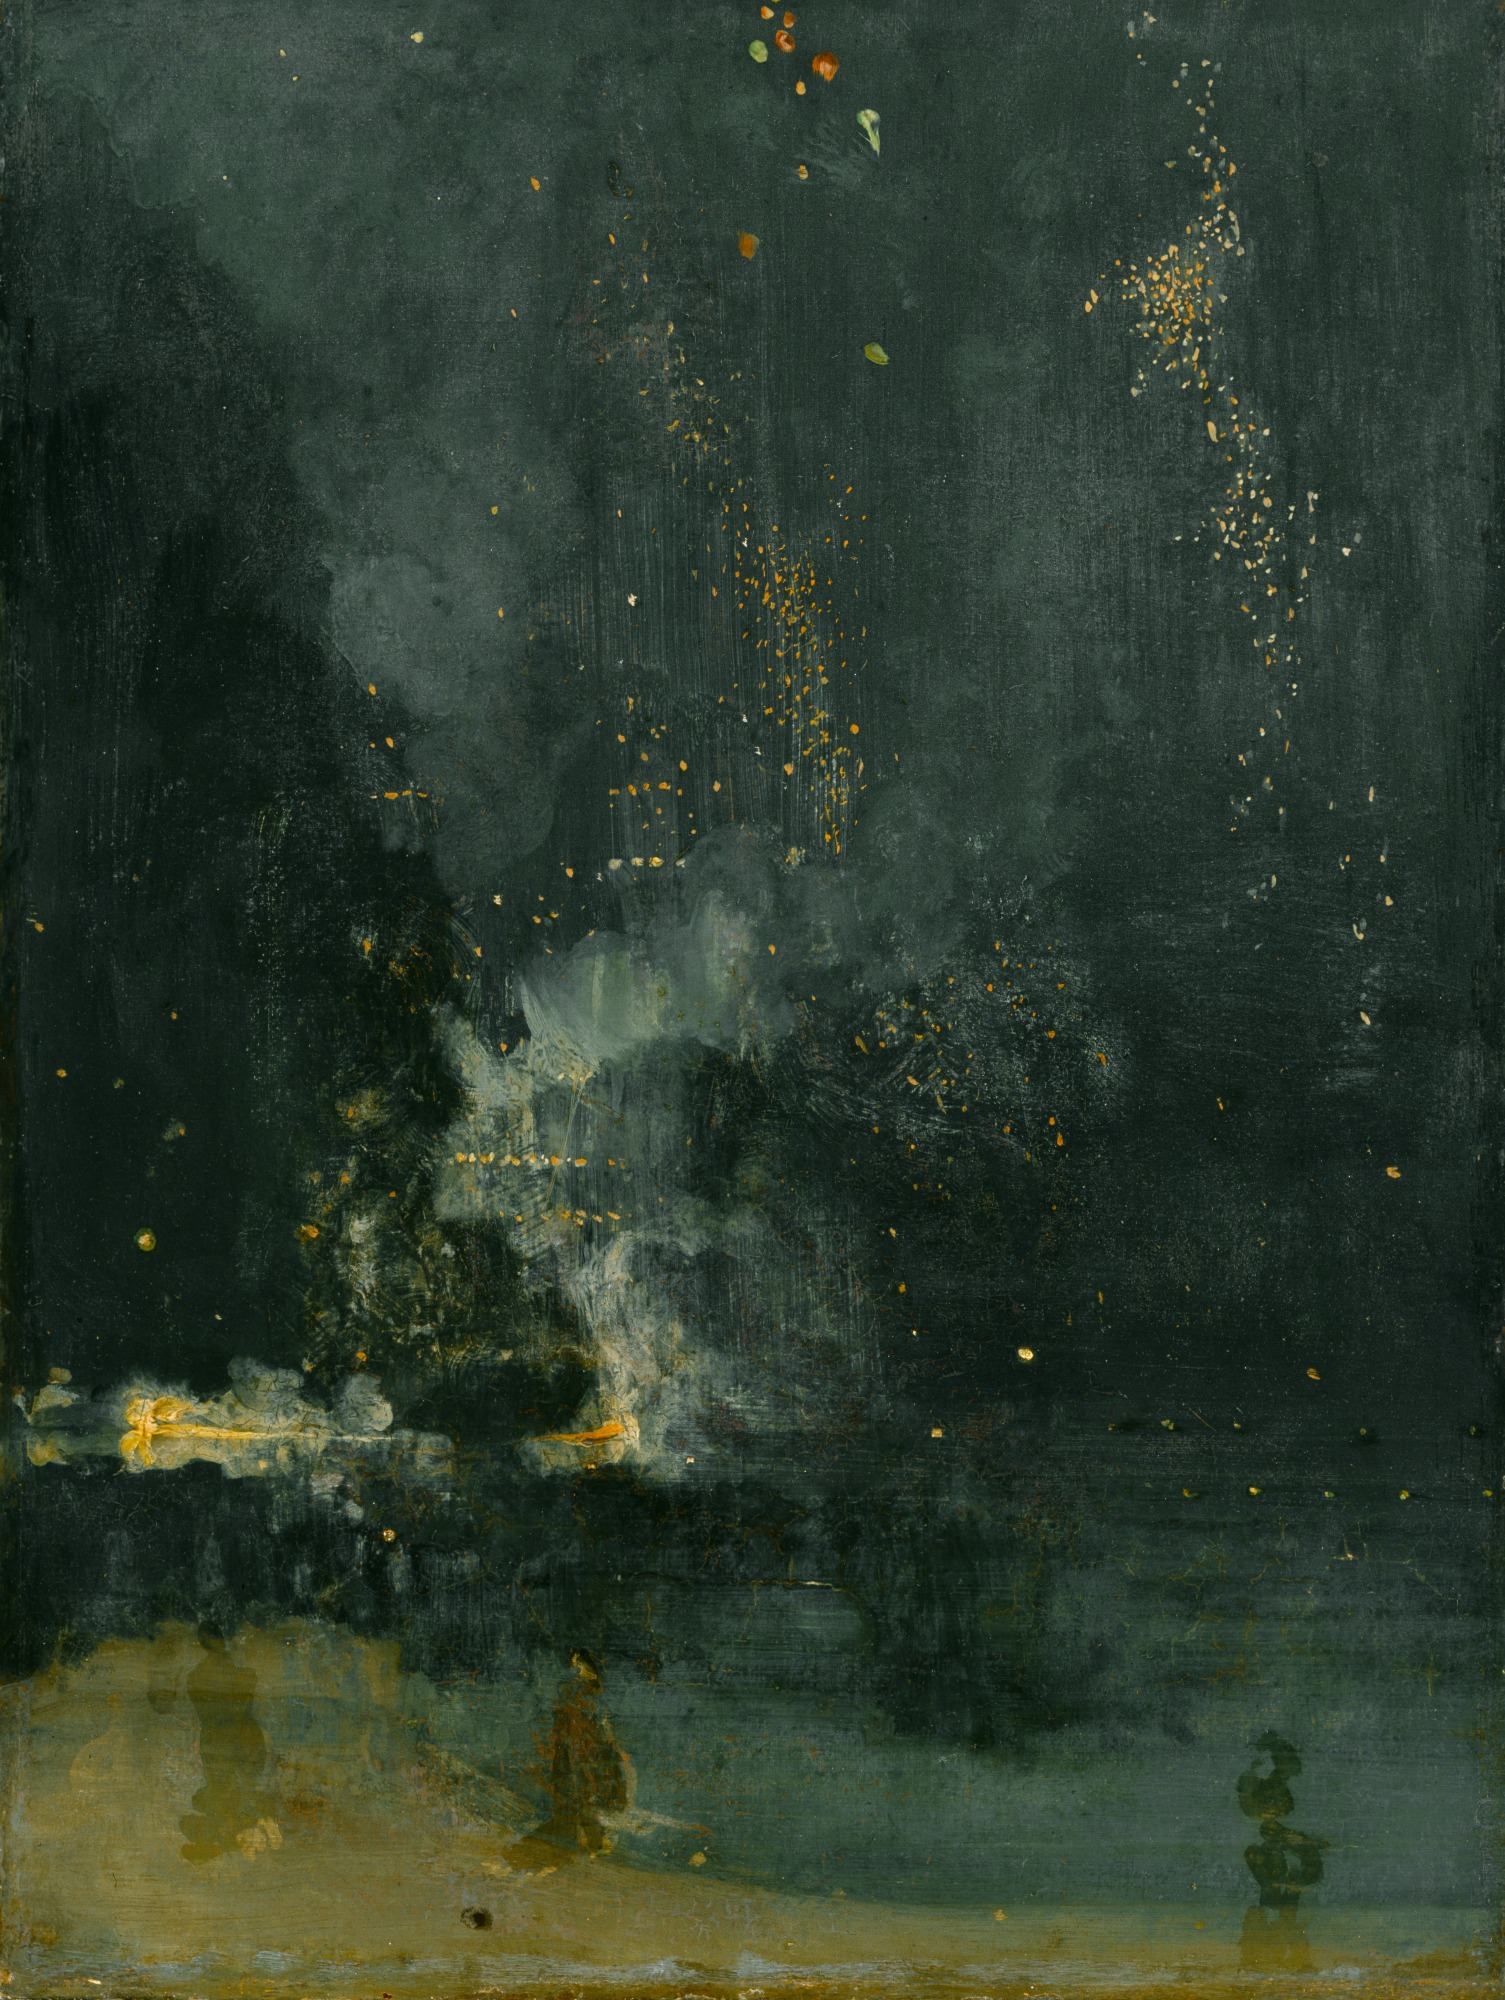 James Abbott McNeill Whistler,  Nocturne in Black and Gold, the Falling Rocket , 1875, oil on panel, Unframed: 23 3/4 × 18 3/8 inches (60.3 × 46.7 cm), Framed: 36 3/4 × 30 1/4 × 3 1/4 inches (93.3 × 76.8 × 8.3 cm), Detroit Institute of Arts, Gift of Dexter M. Ferry, Jr., 46.309.